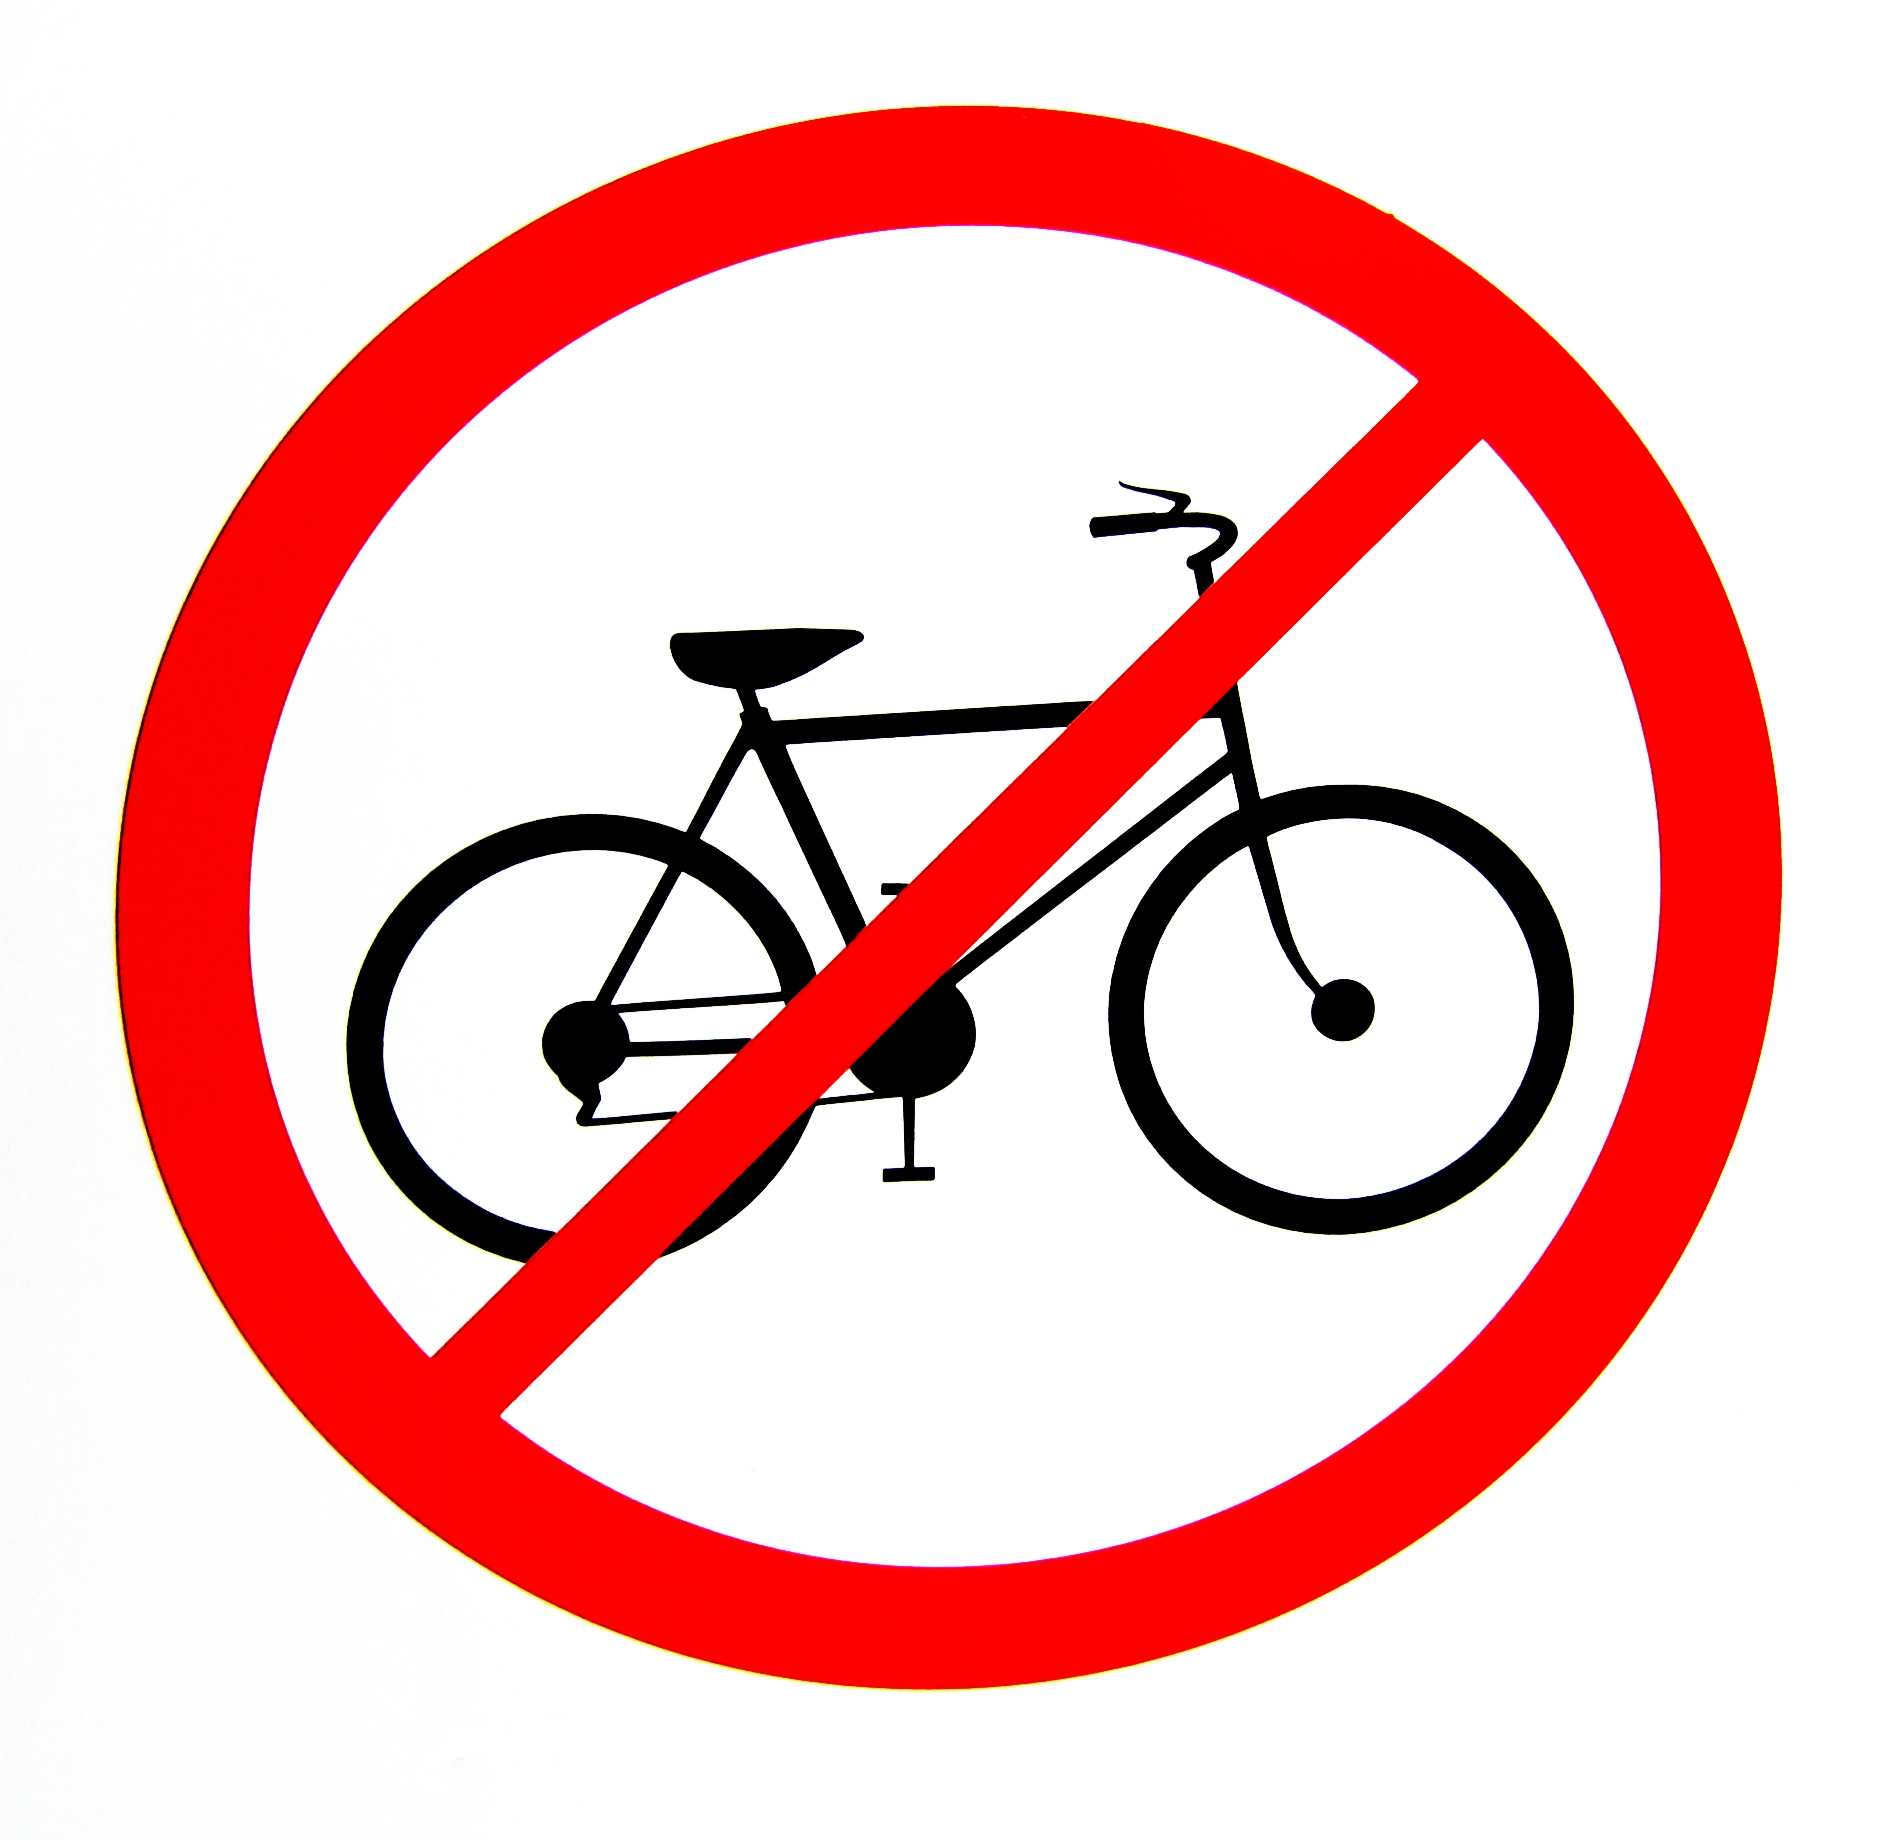 No Bicycles allowed, Bicycle, Prohibited, Warning, Threat, HQ Photo